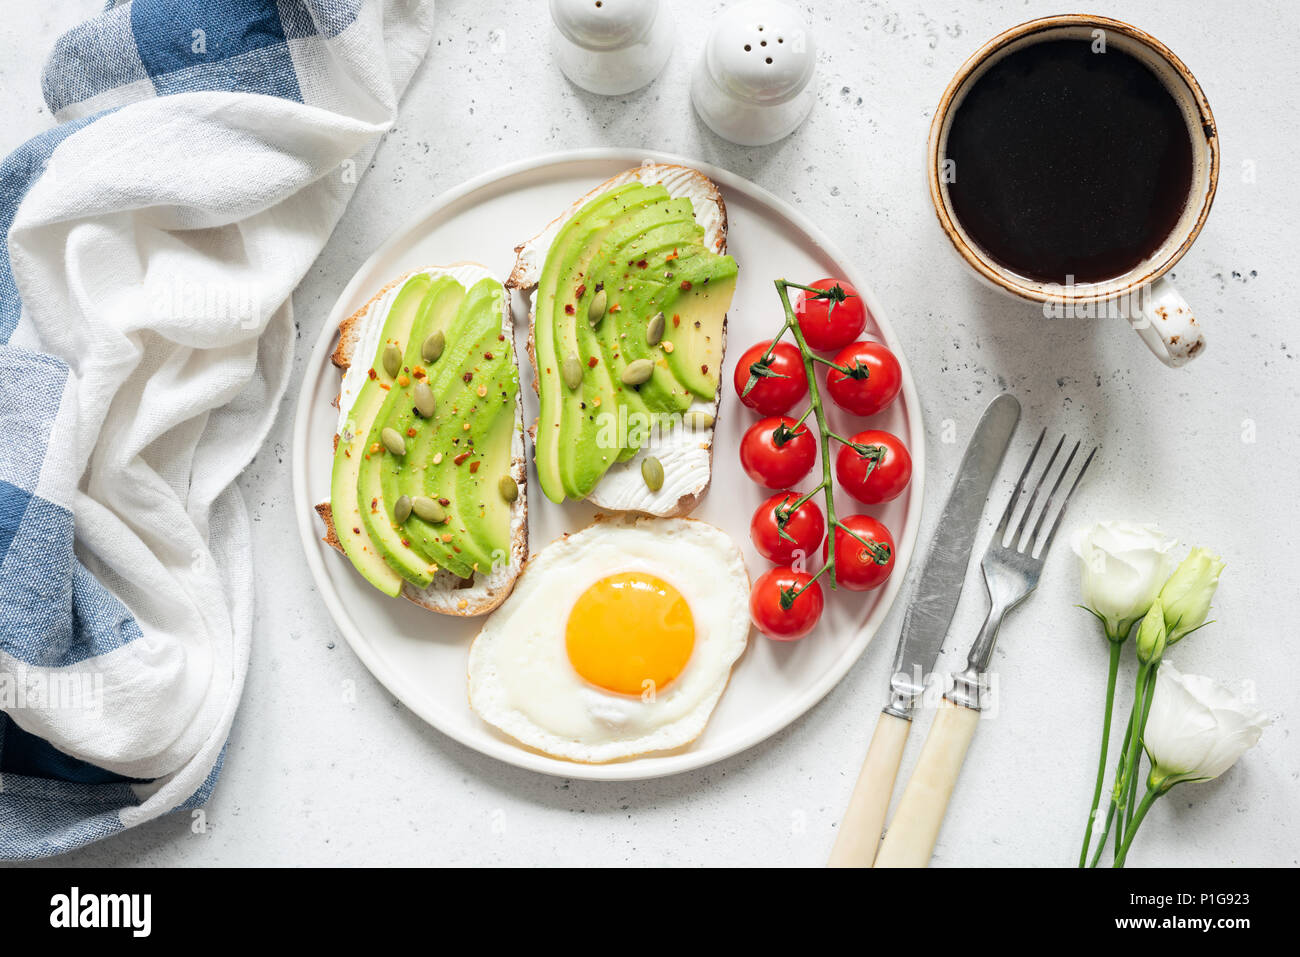 Breakfast avocado toast with fried egg, cherry tomatoes, cup of coffee and white flowers. Breakfast in bed. Healthy lifestyle, healthy eating concept - Stock Image